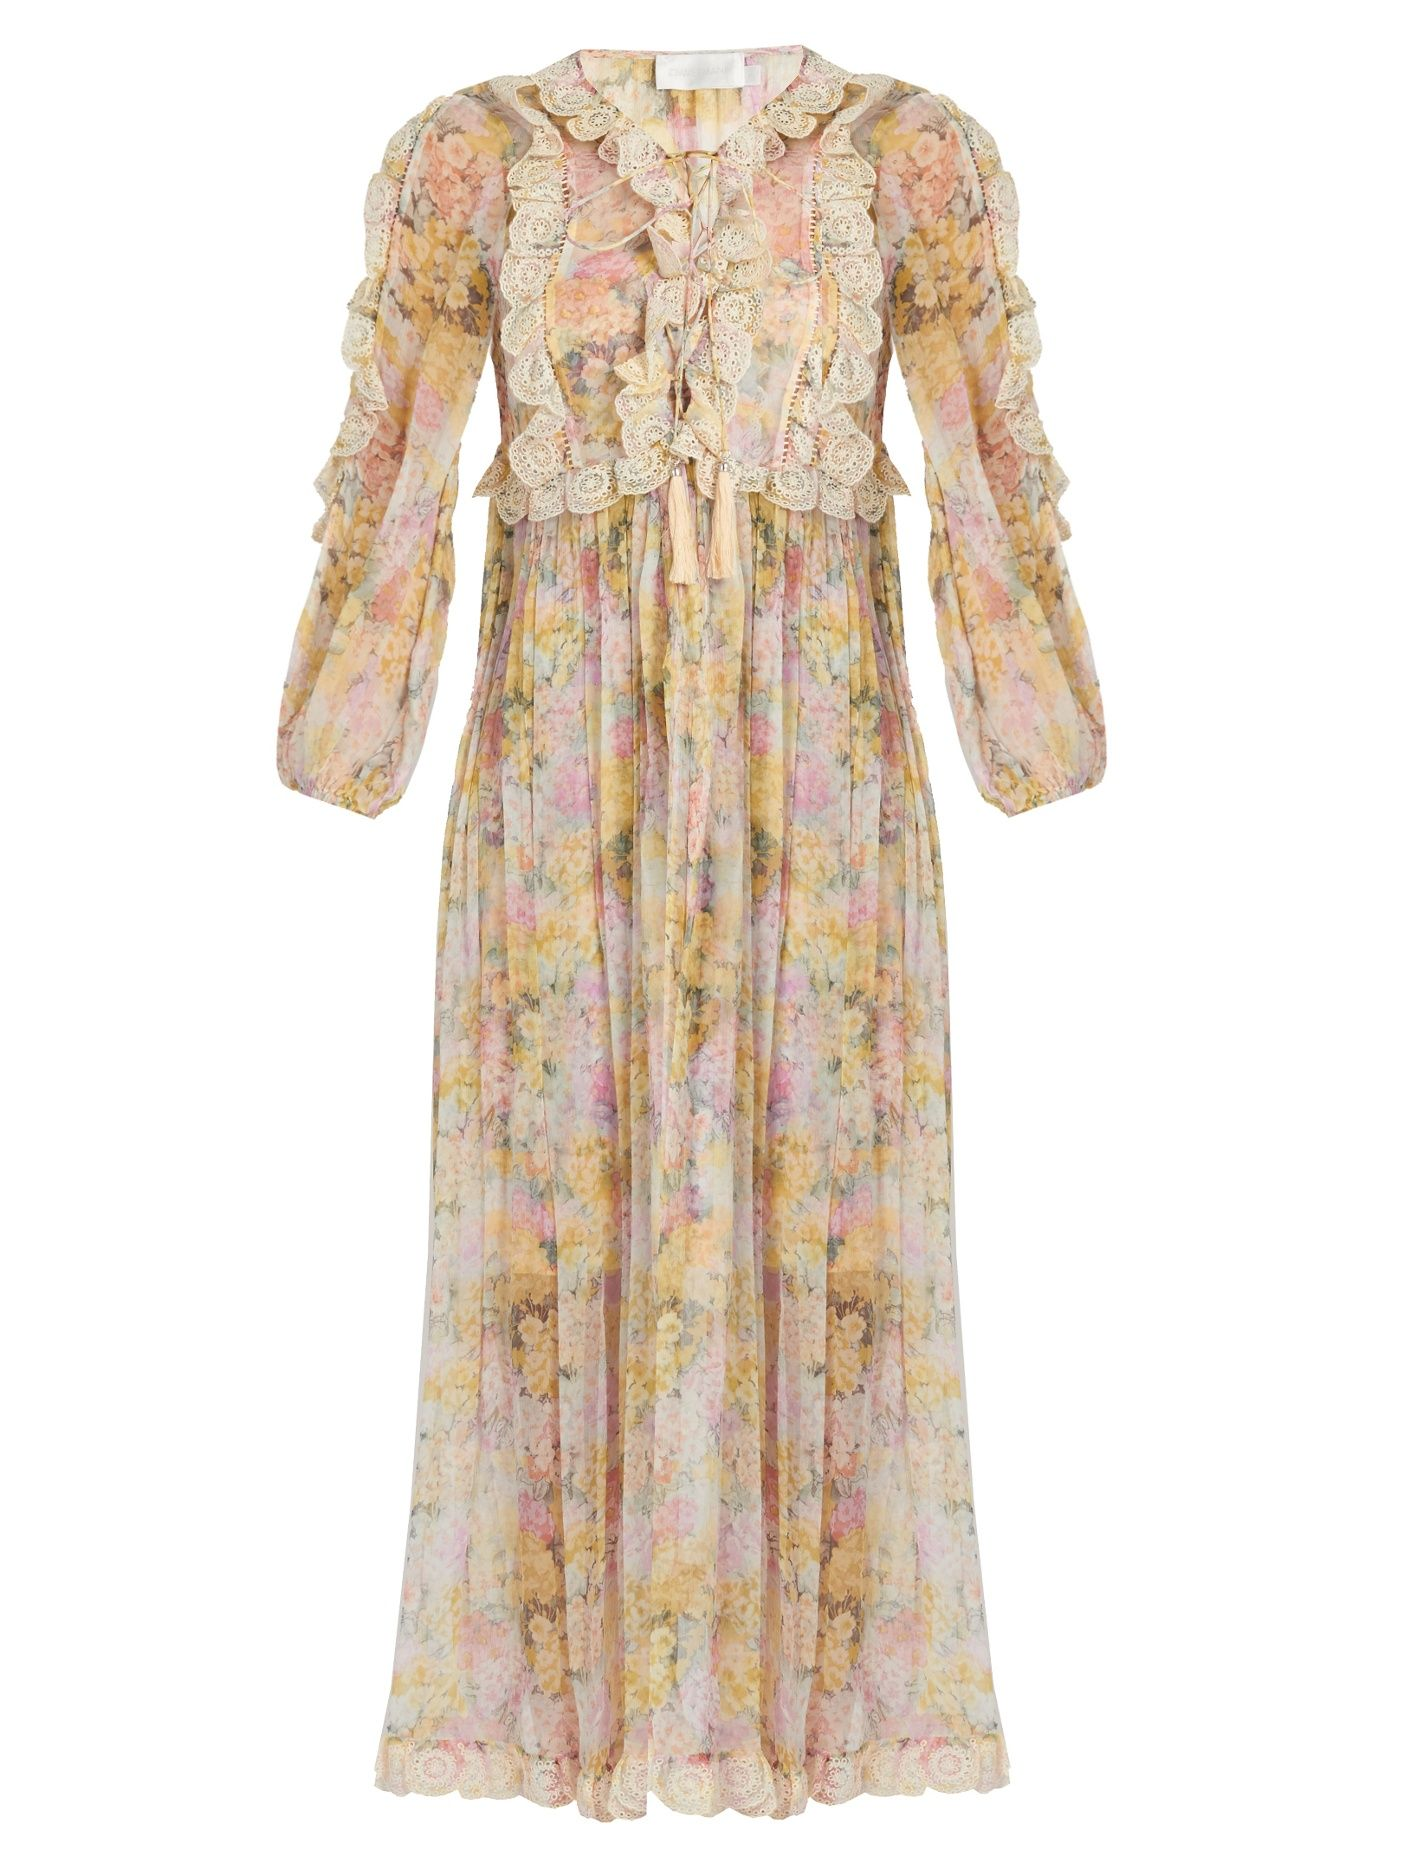 Valour floral print silk crepon dress | Zimmermann